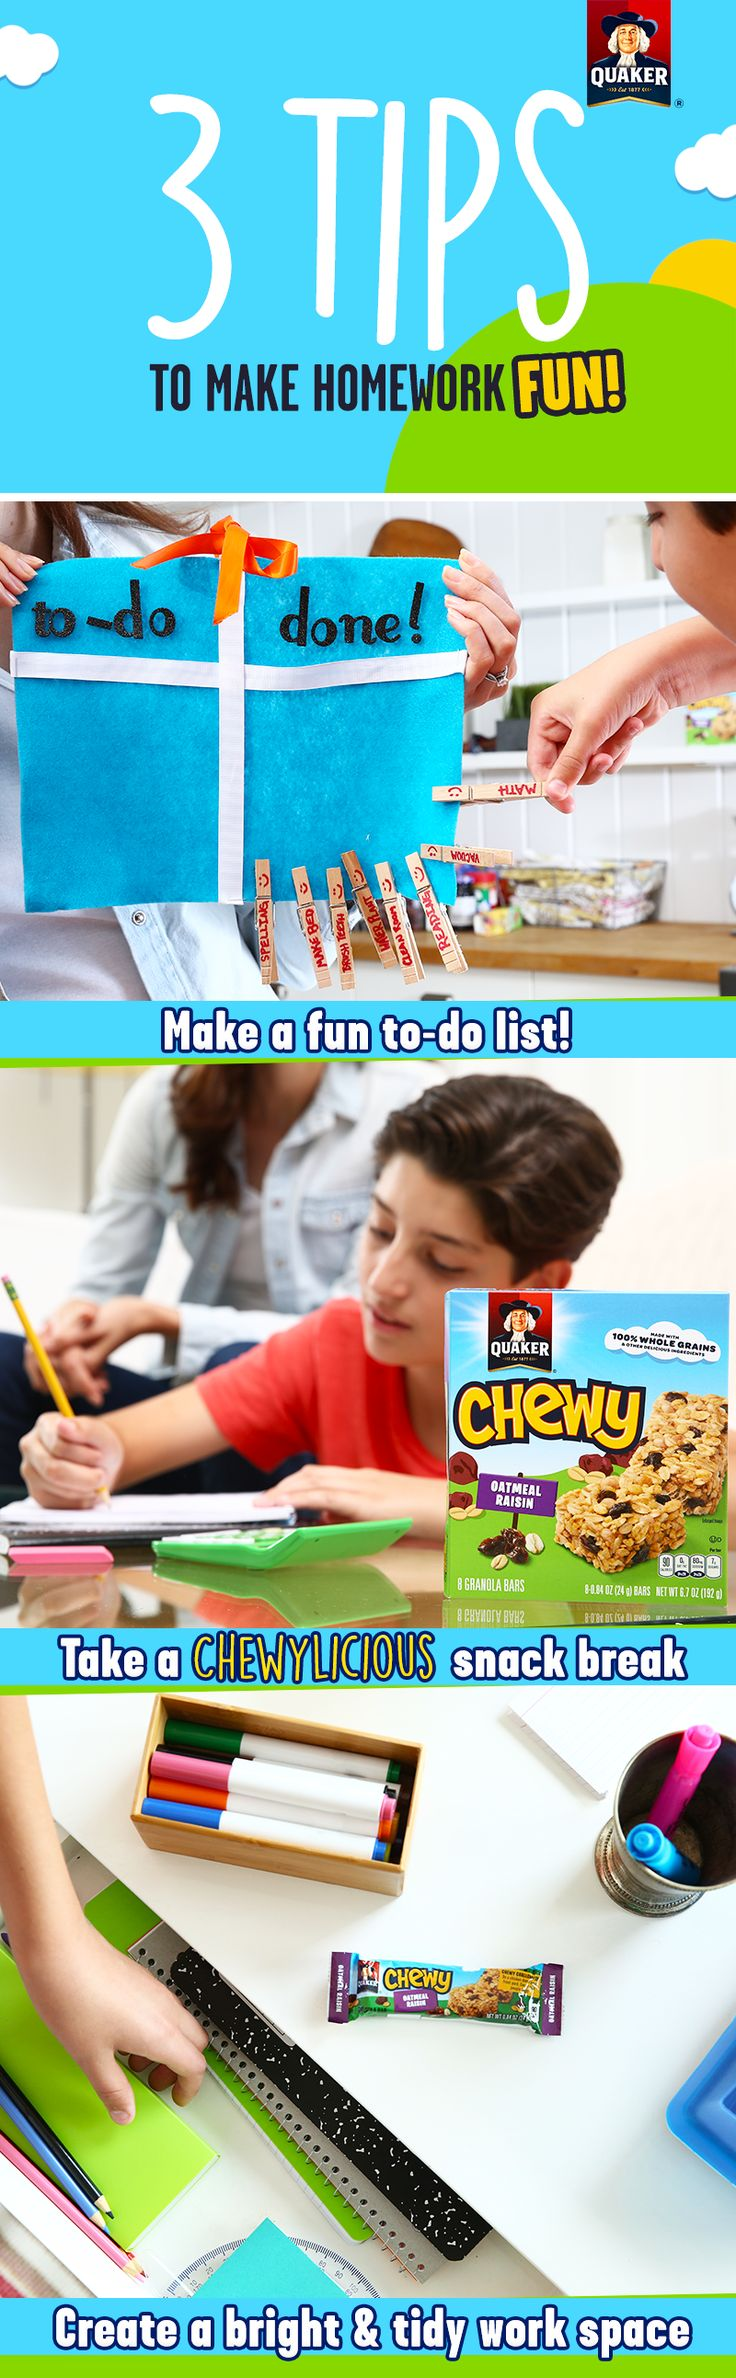 Homework can be fun! Practice these easy tips during your next study session with your kid— our favorite is to add in a snack break! Quaker® Chewy Granola Bars are made with 8g of 100% whole grains and other yummy ingredients for a delicious after school snack that moms and kids can both agree on.